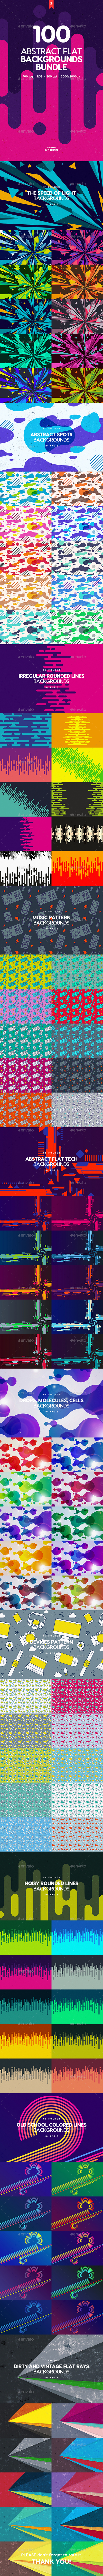 100 Abstract Flat Backgrounds Bundle - Abstract Backgrounds